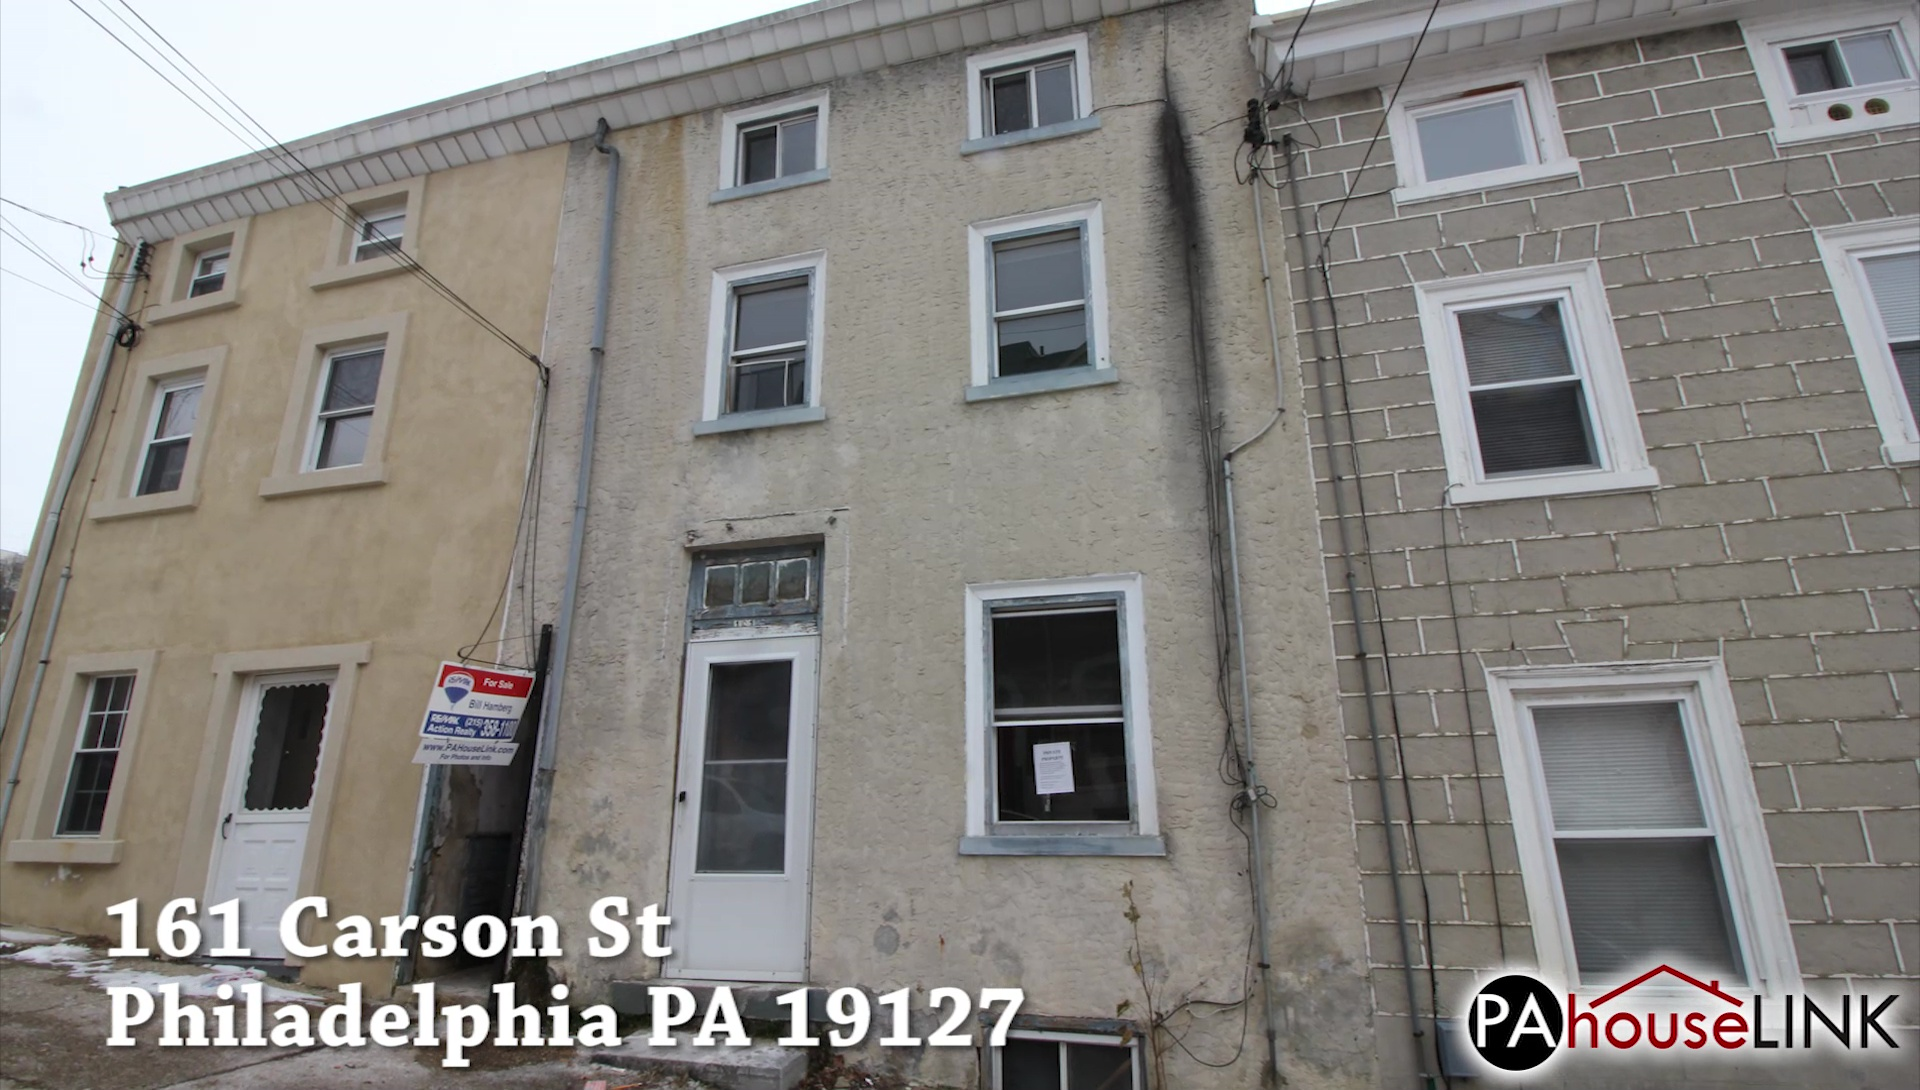 161 Carson St Philadelphia PA 19127 | Coming Soon Foreclosure Properties Philadelphia PA 19127